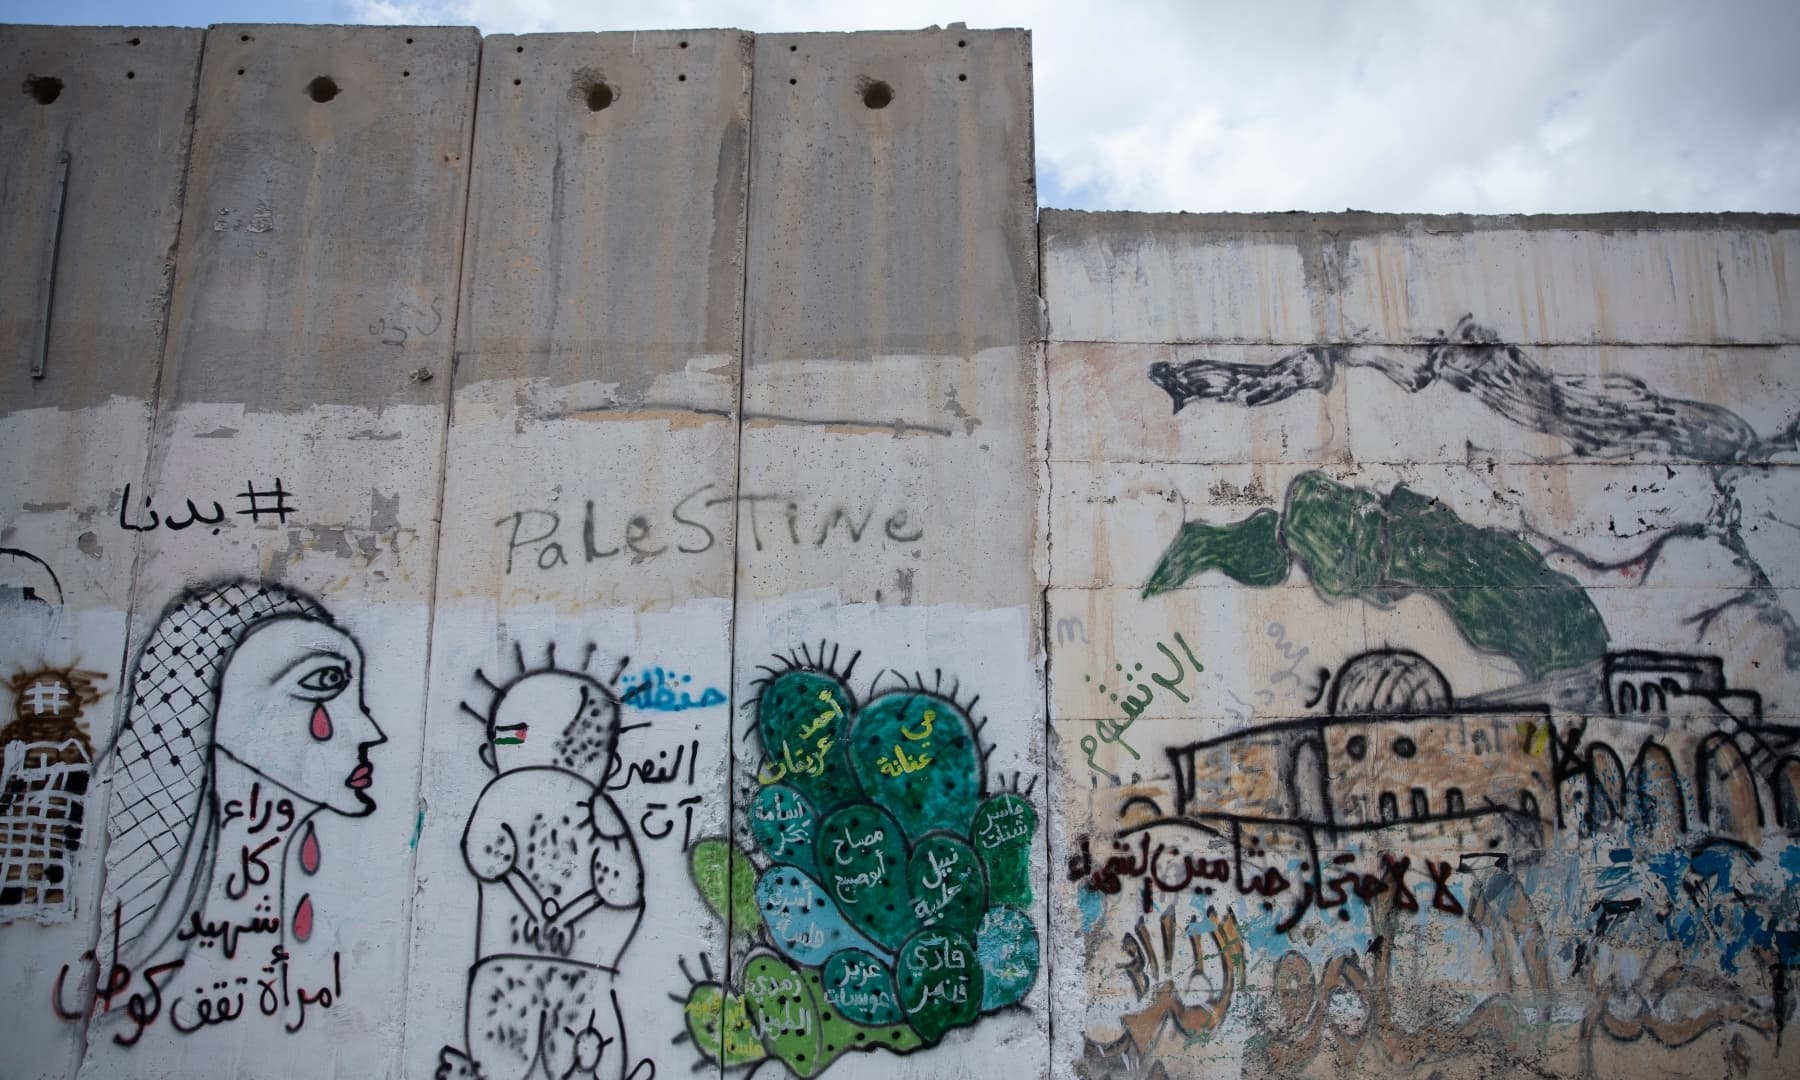 """A graffiti with names of Palestinians who were killed in conflict and Israel is holding their bodies, and reads """"no for the detention of the Martyrs remains,"""" at a section of the Israeli separation wall, in the village of Abu Dis, South of Ramallah, Palestine on September 24, 2021. — AP"""